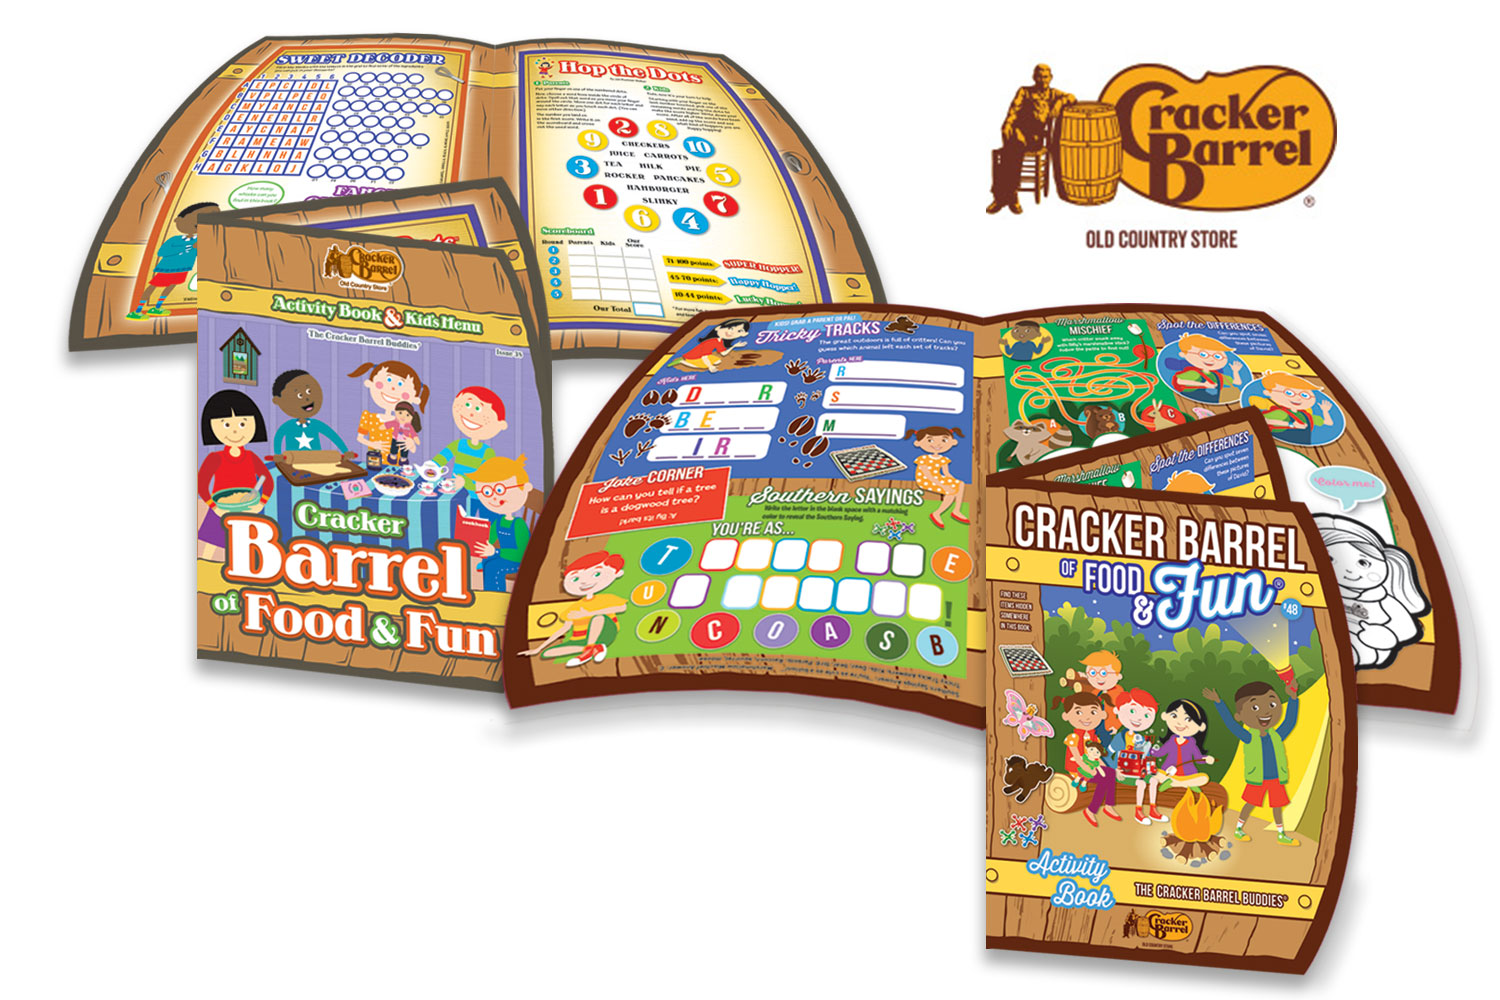 Cracker Barrel's 2016 revamp centred on a character refresh, with a subtle update in overall design.Characters now look more mature and have more detailed features. Games feature more group participation and every issue highlights different Cracker Barrel merchandise from the Cracker Barrel store.